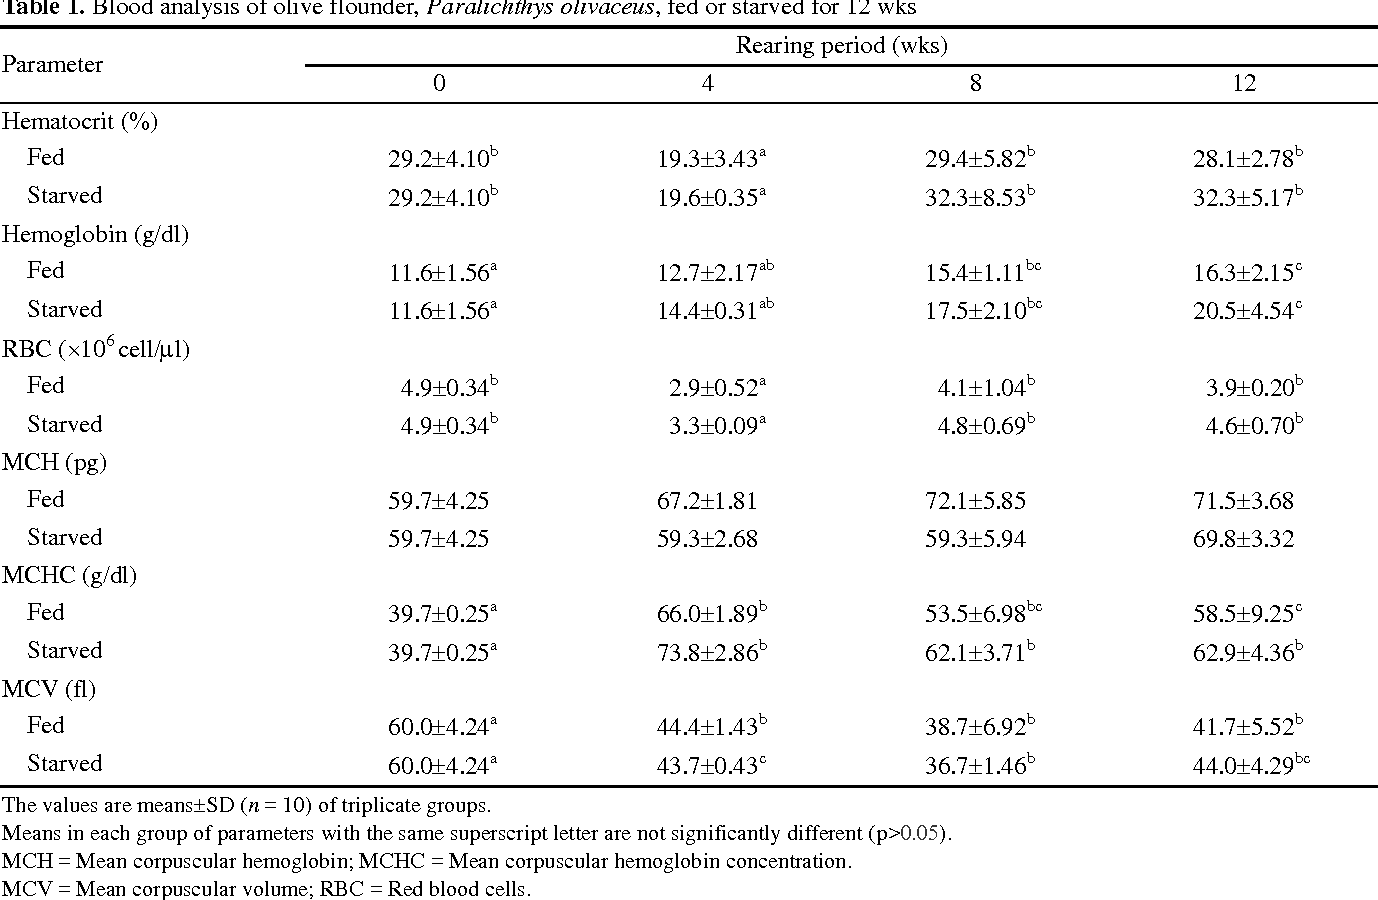 Table 1. Blood analysis of olive flounder, Paralichthys olivaceus, fed or starved for 12 wks